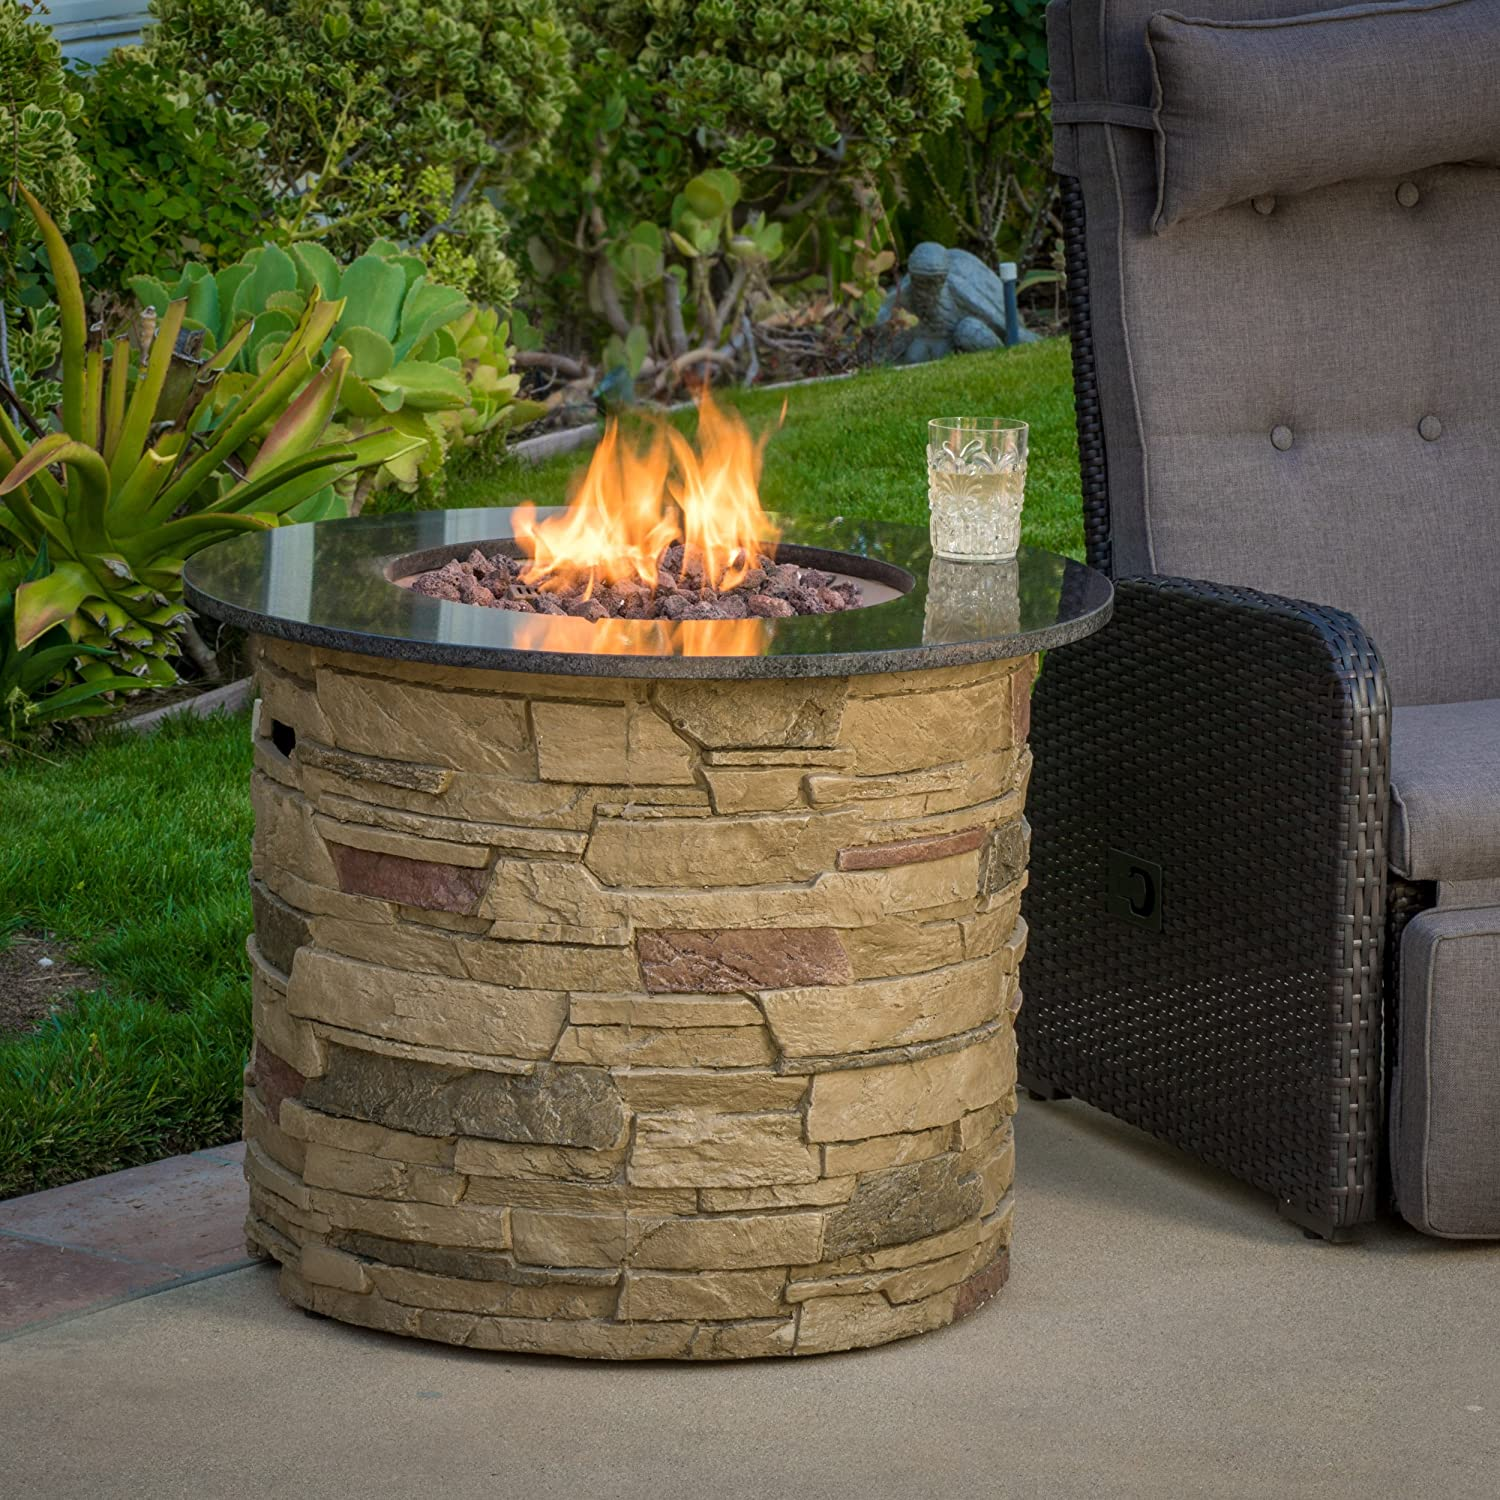 Christopher Knight Home 296658 Rogers Round Stone Fire Pit Table, 32 Propane Gas Patio Heater with Lava Rocks